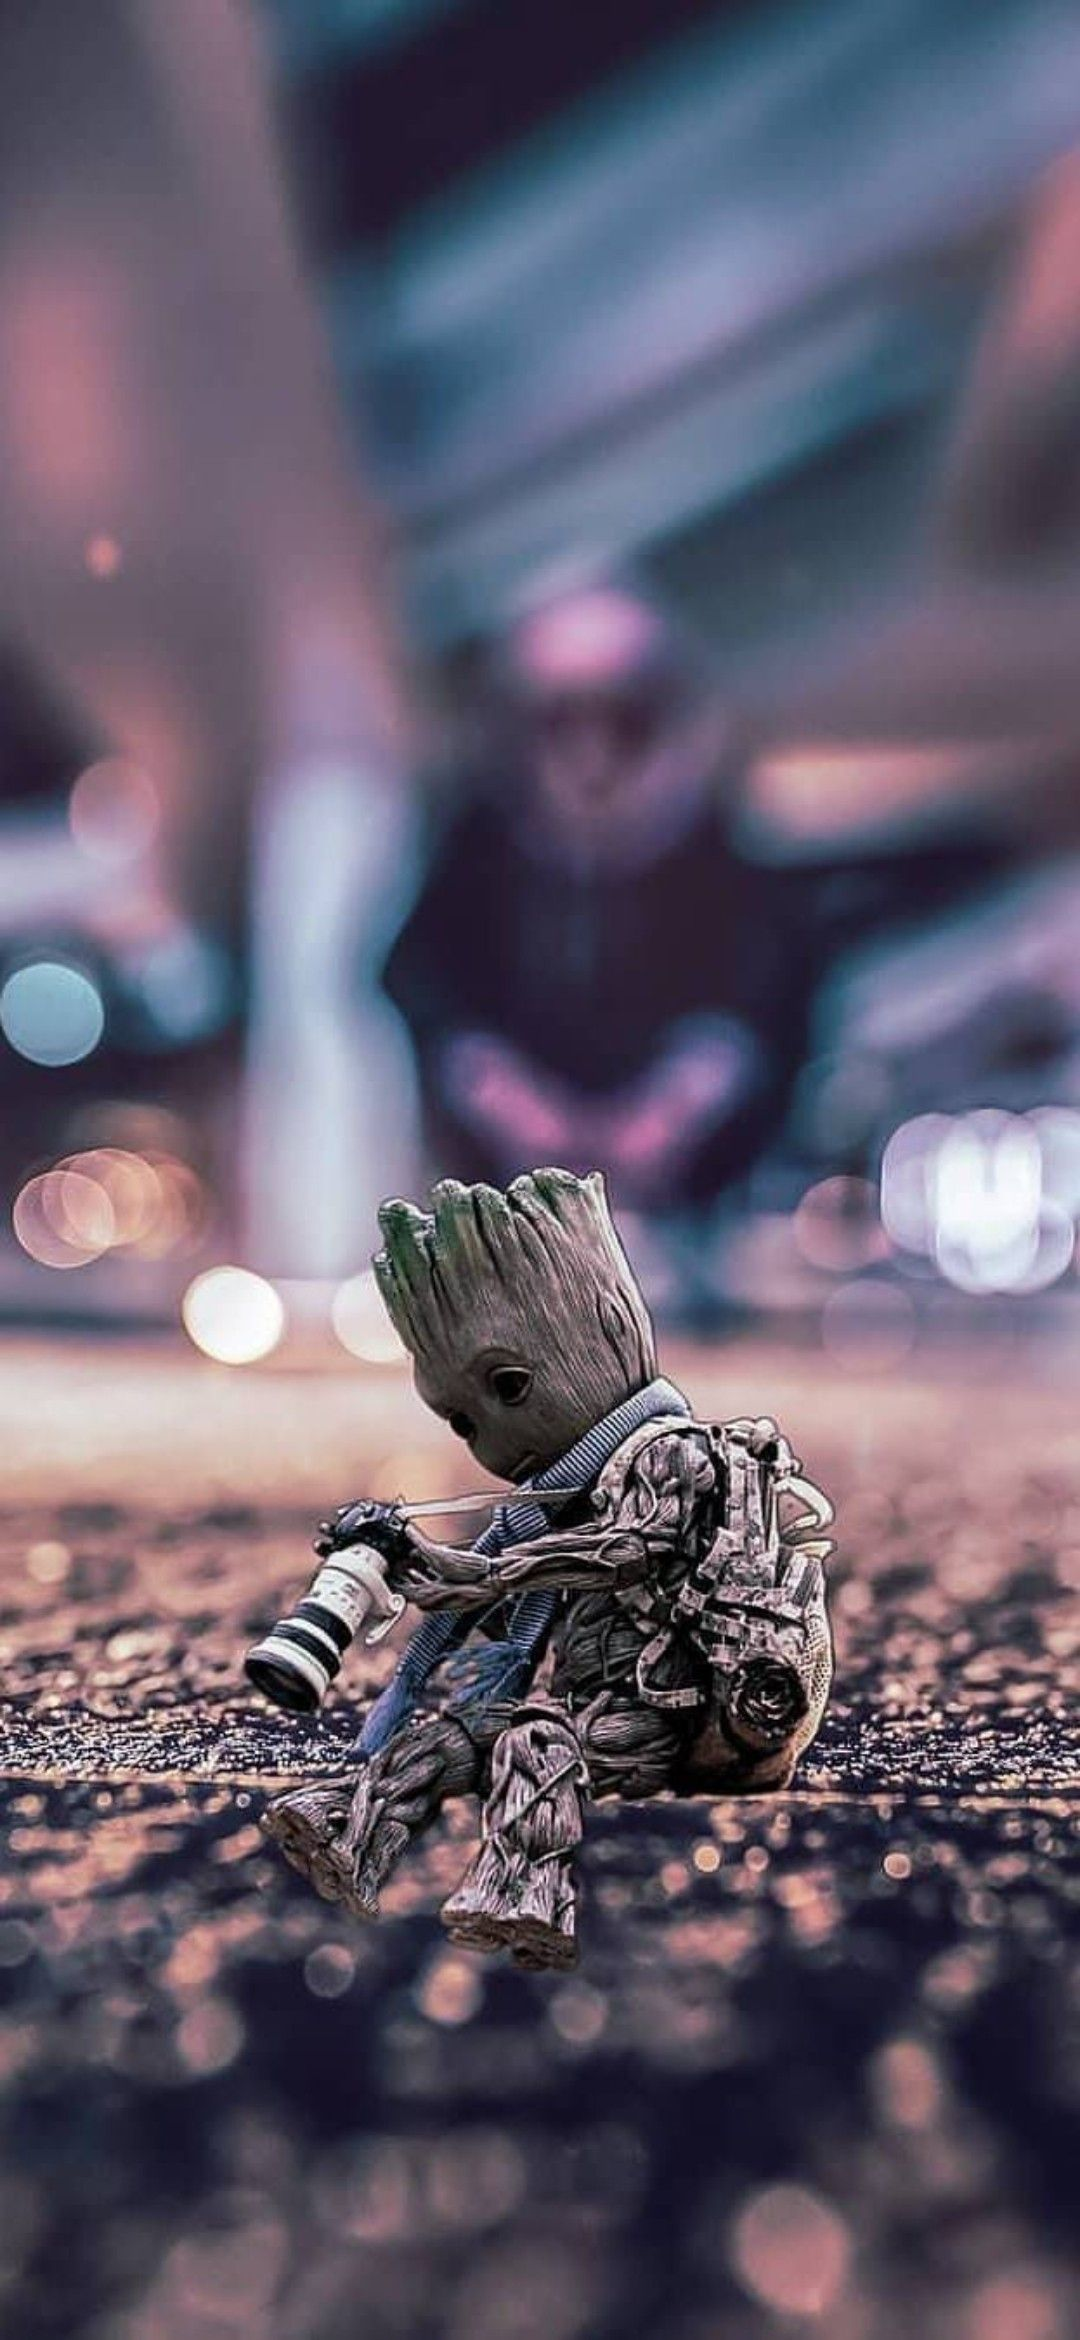 Pin by Marie L. on baby groot in 2020 Phone wallpaper